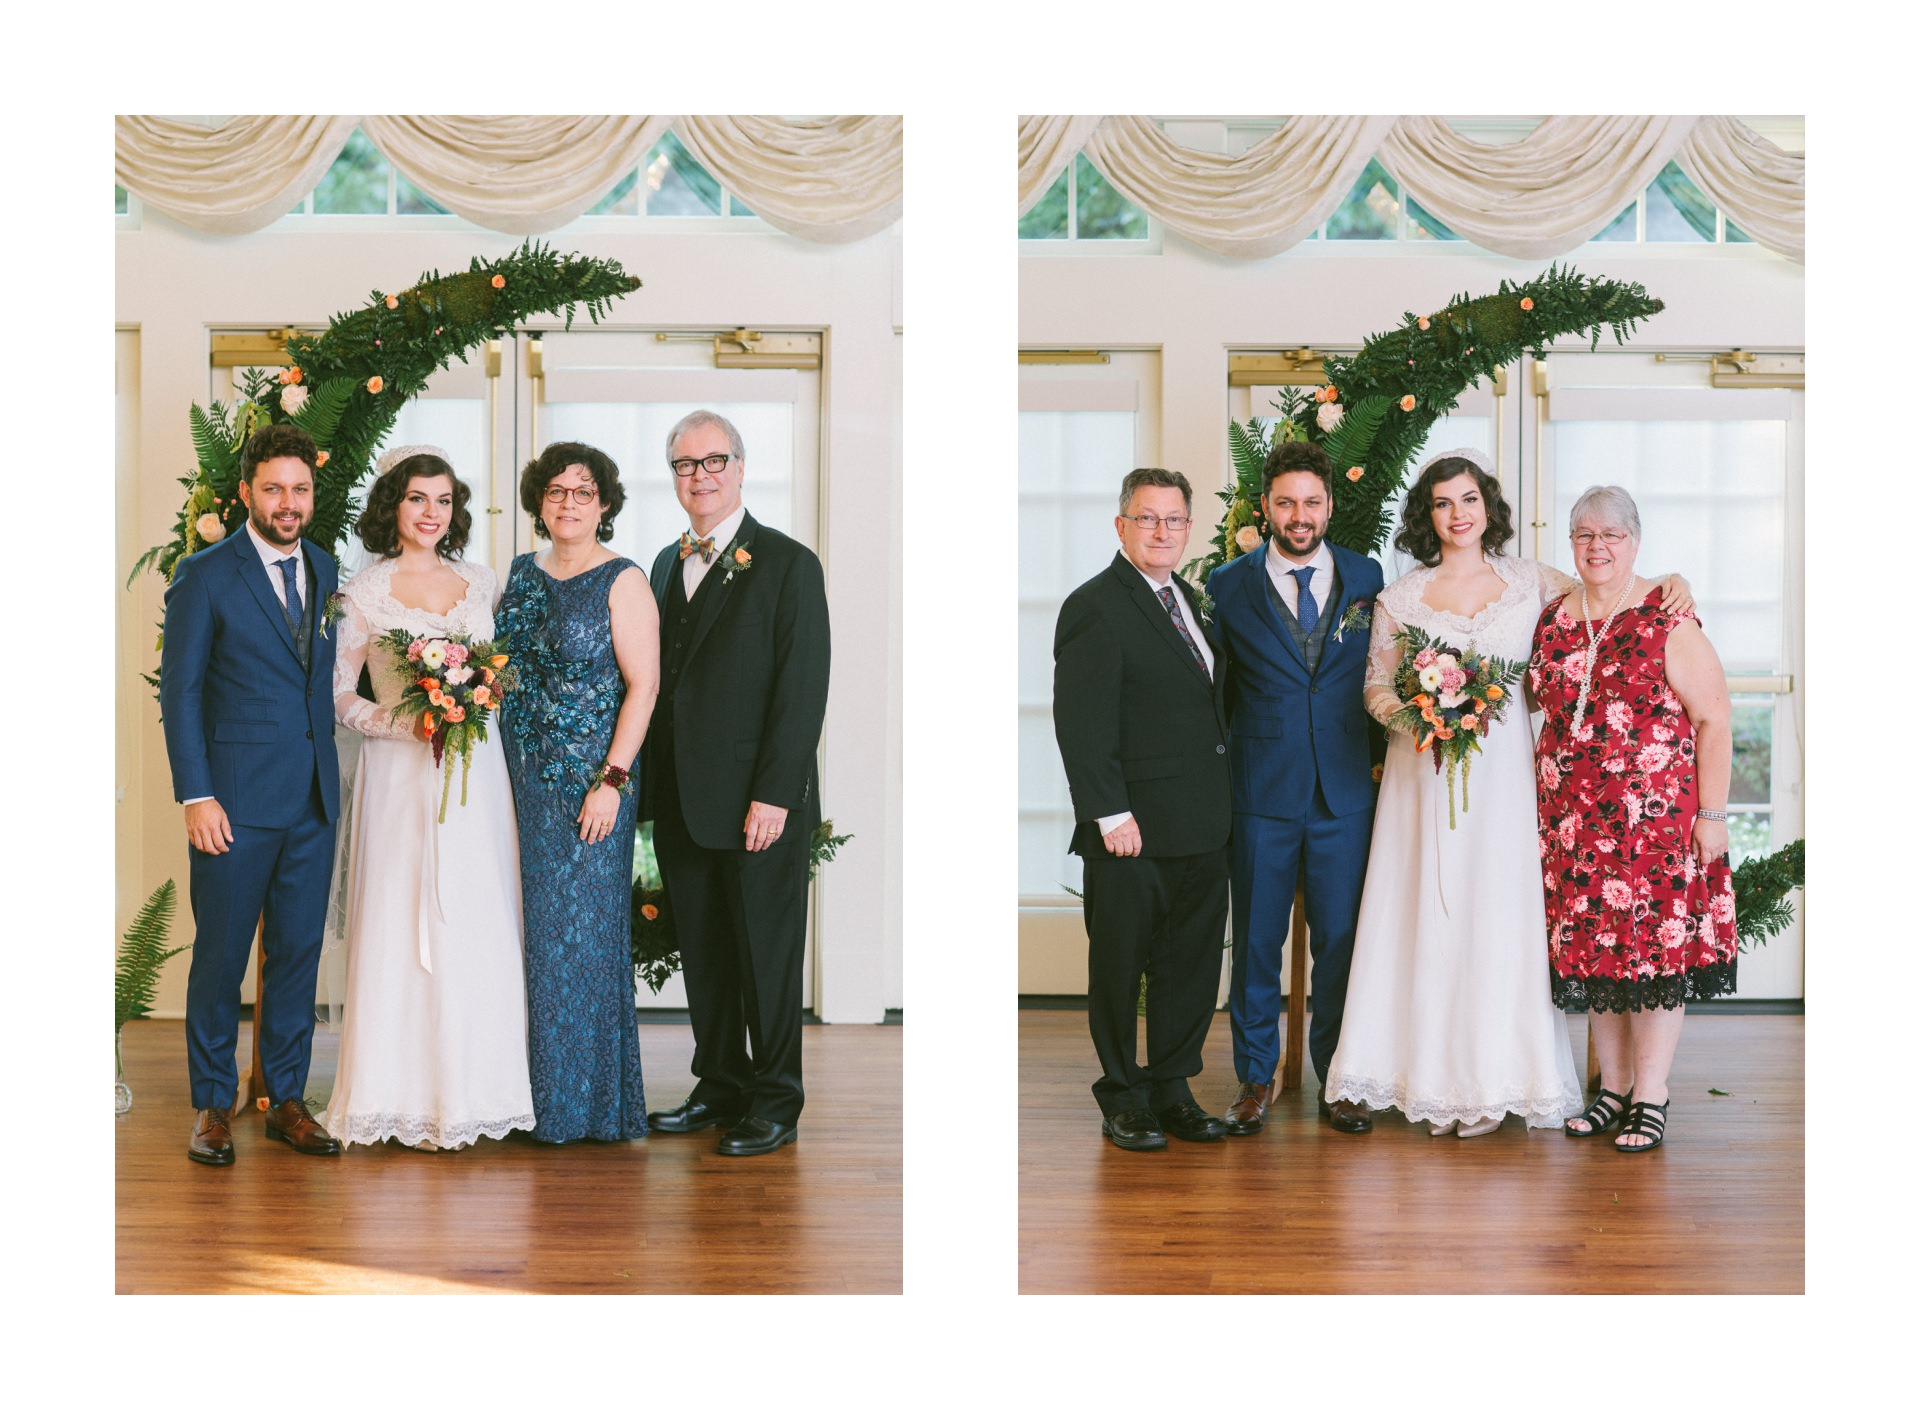 Wedding at the Glidden House in Cleveland 2 15.jpg